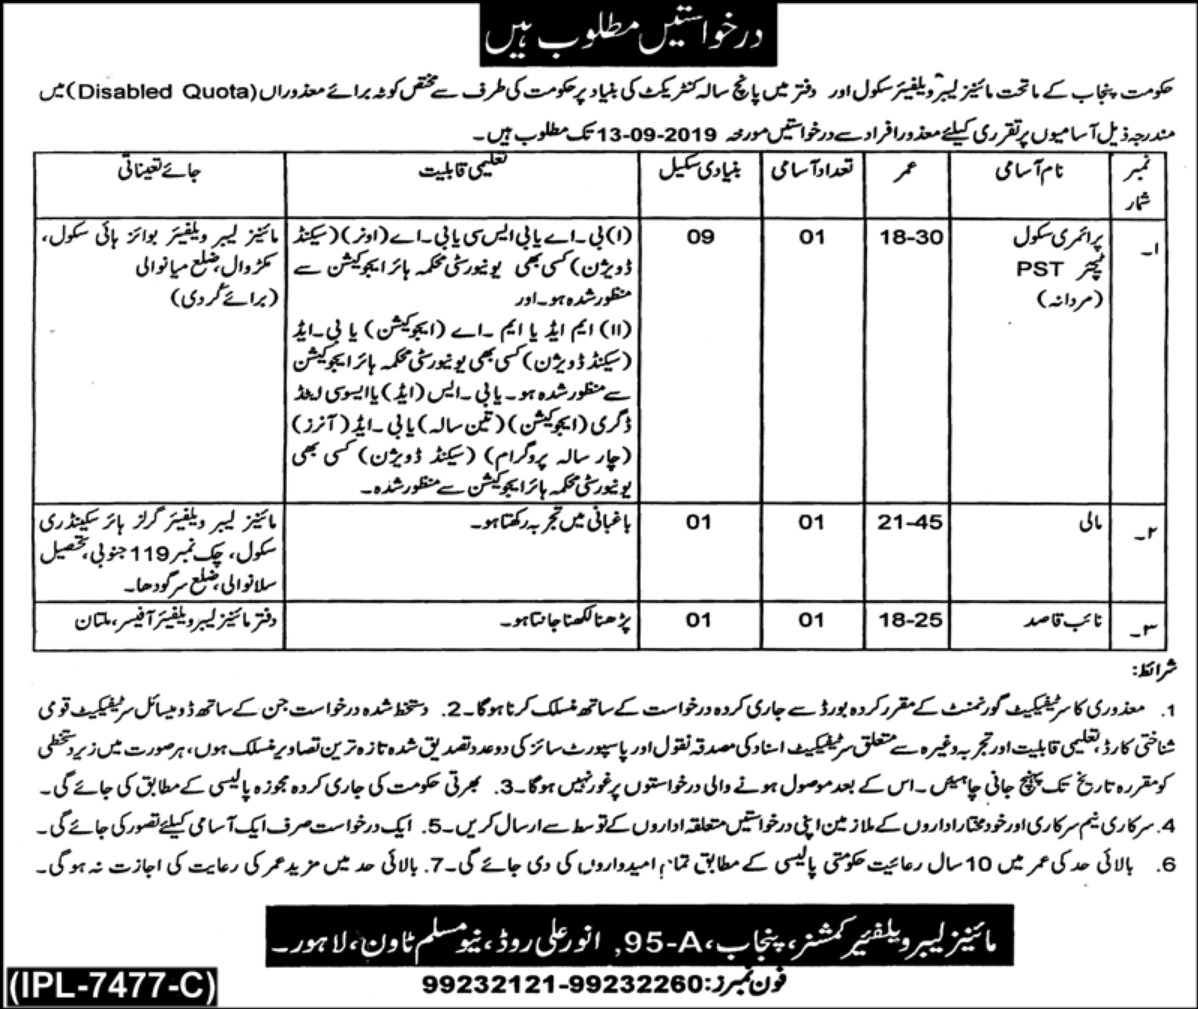 Mines Labour Welfare Organization Punjab Lahore Jobs 2019